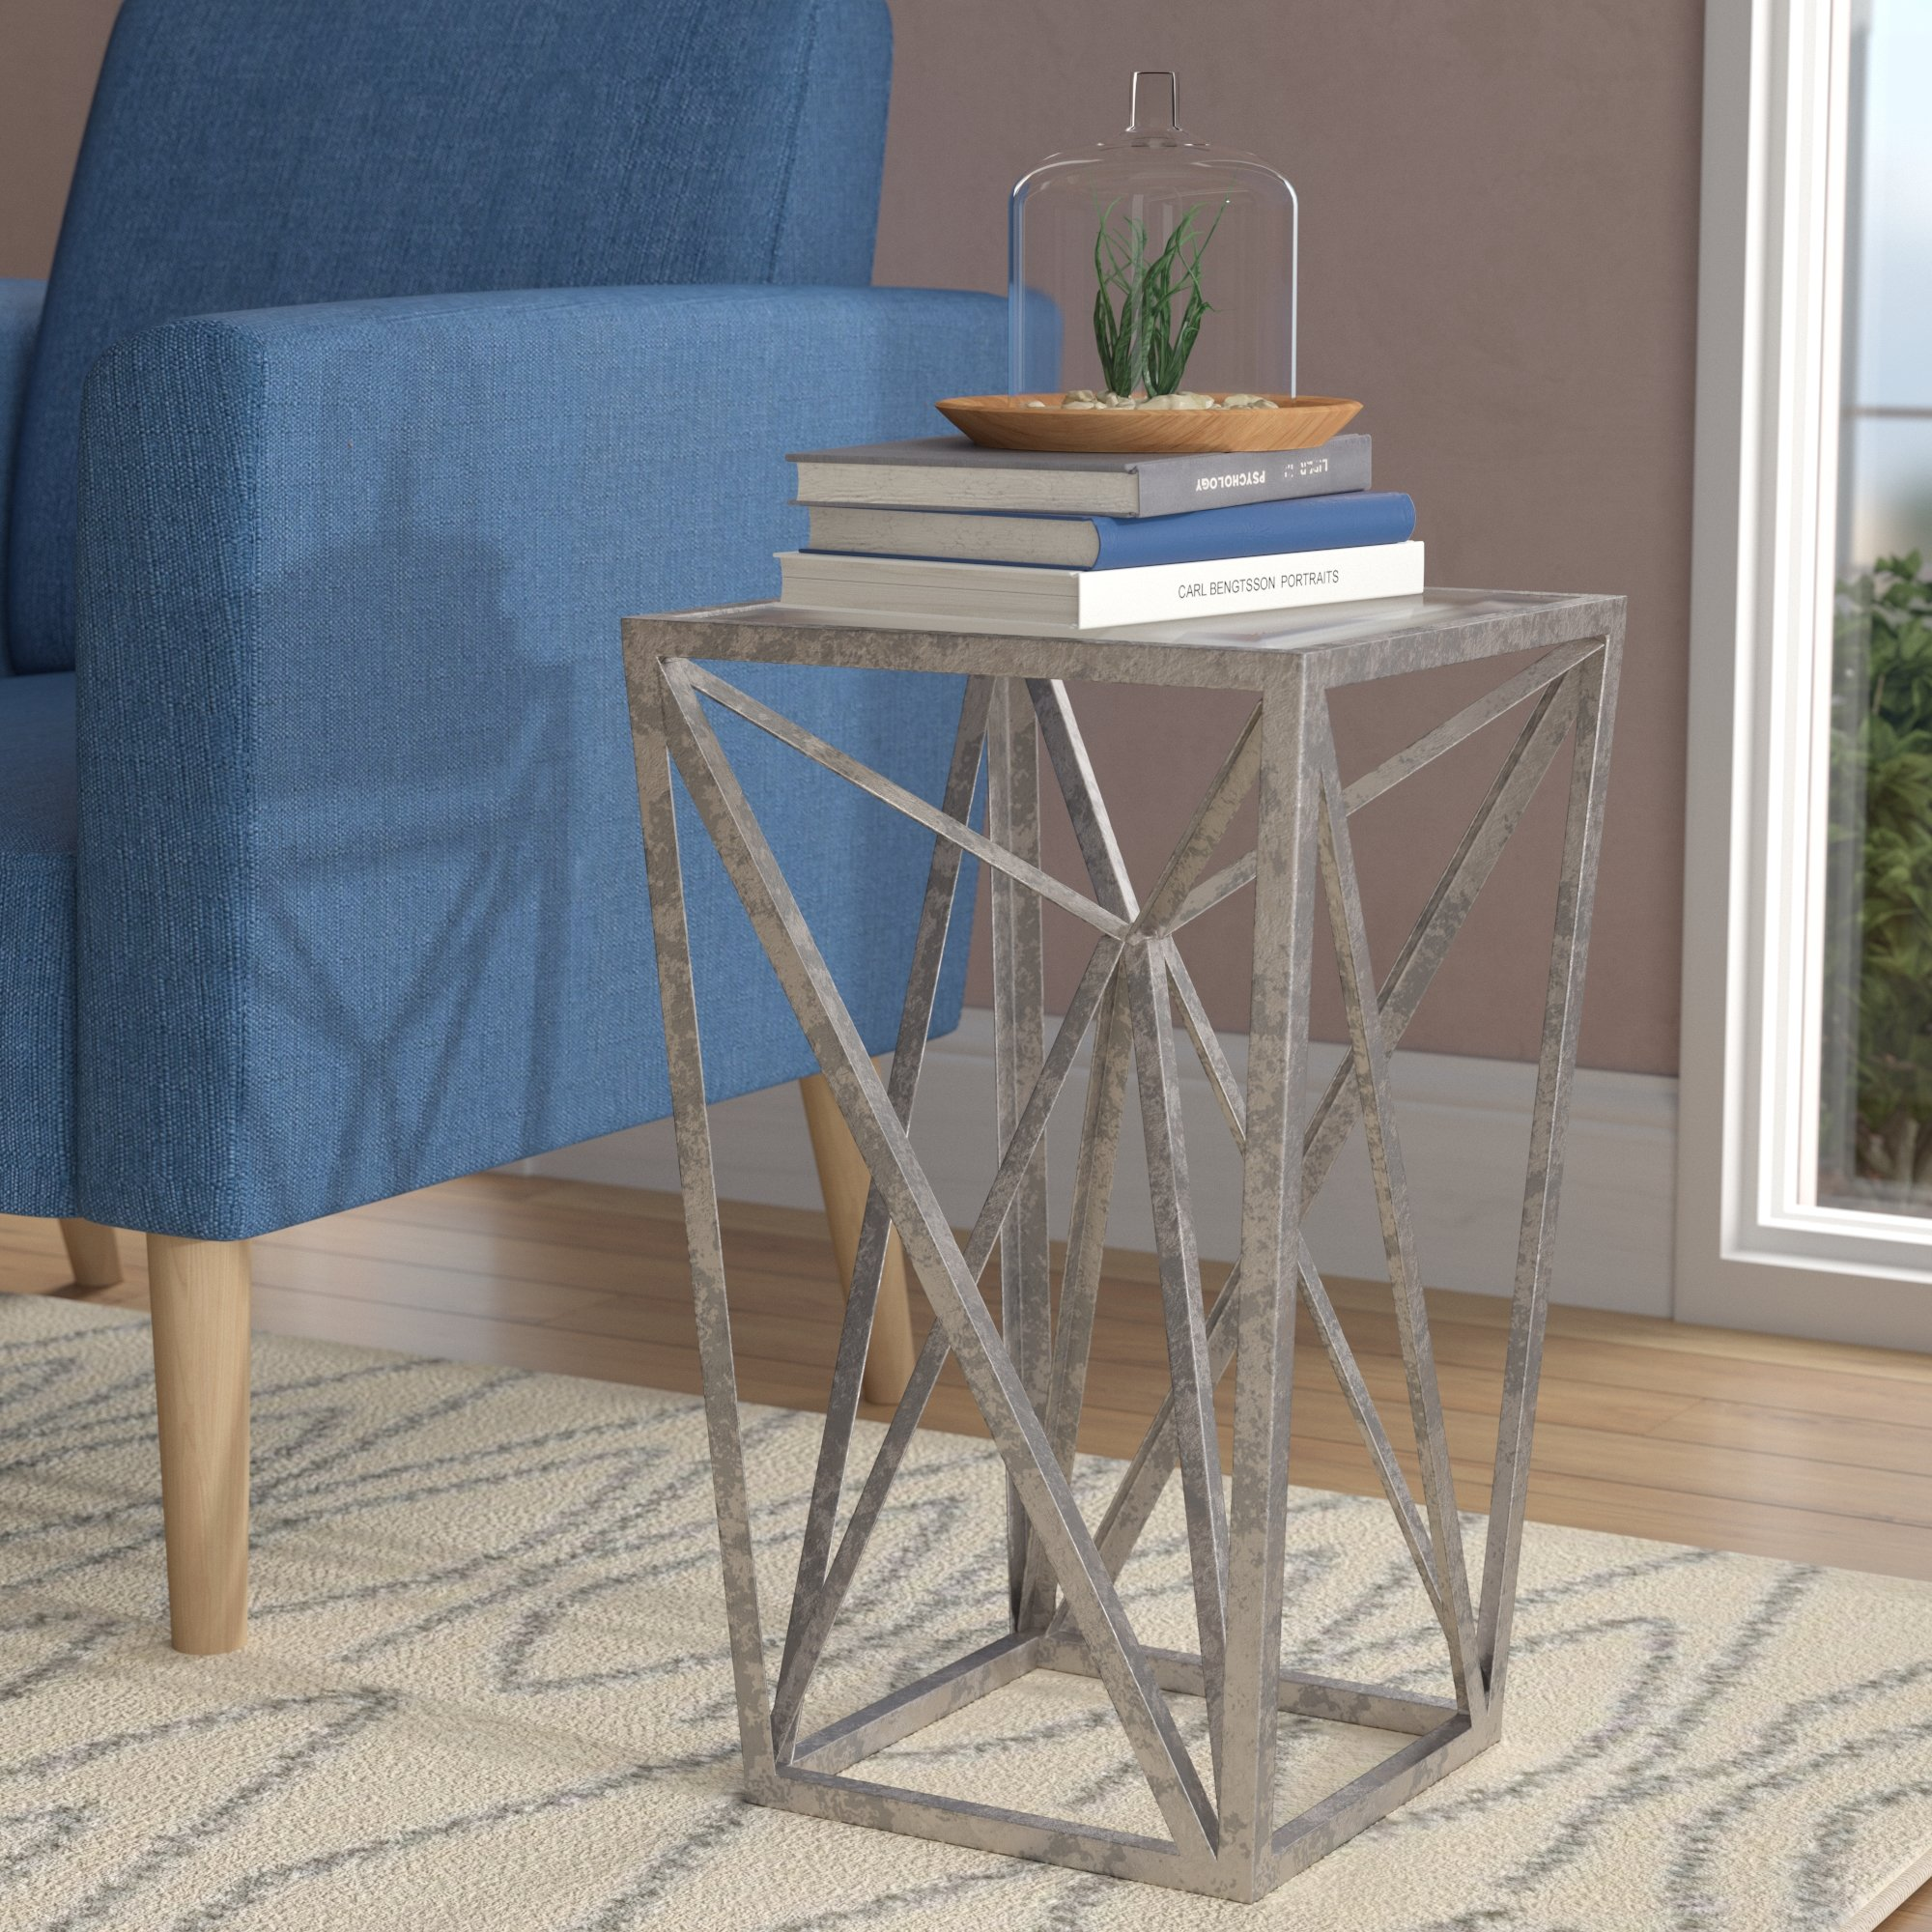 small end tables you love stenson table ifrane accent quickview hampton bay outdoor furniture argos side wicker target clearance bedding silver bar height for round fitted